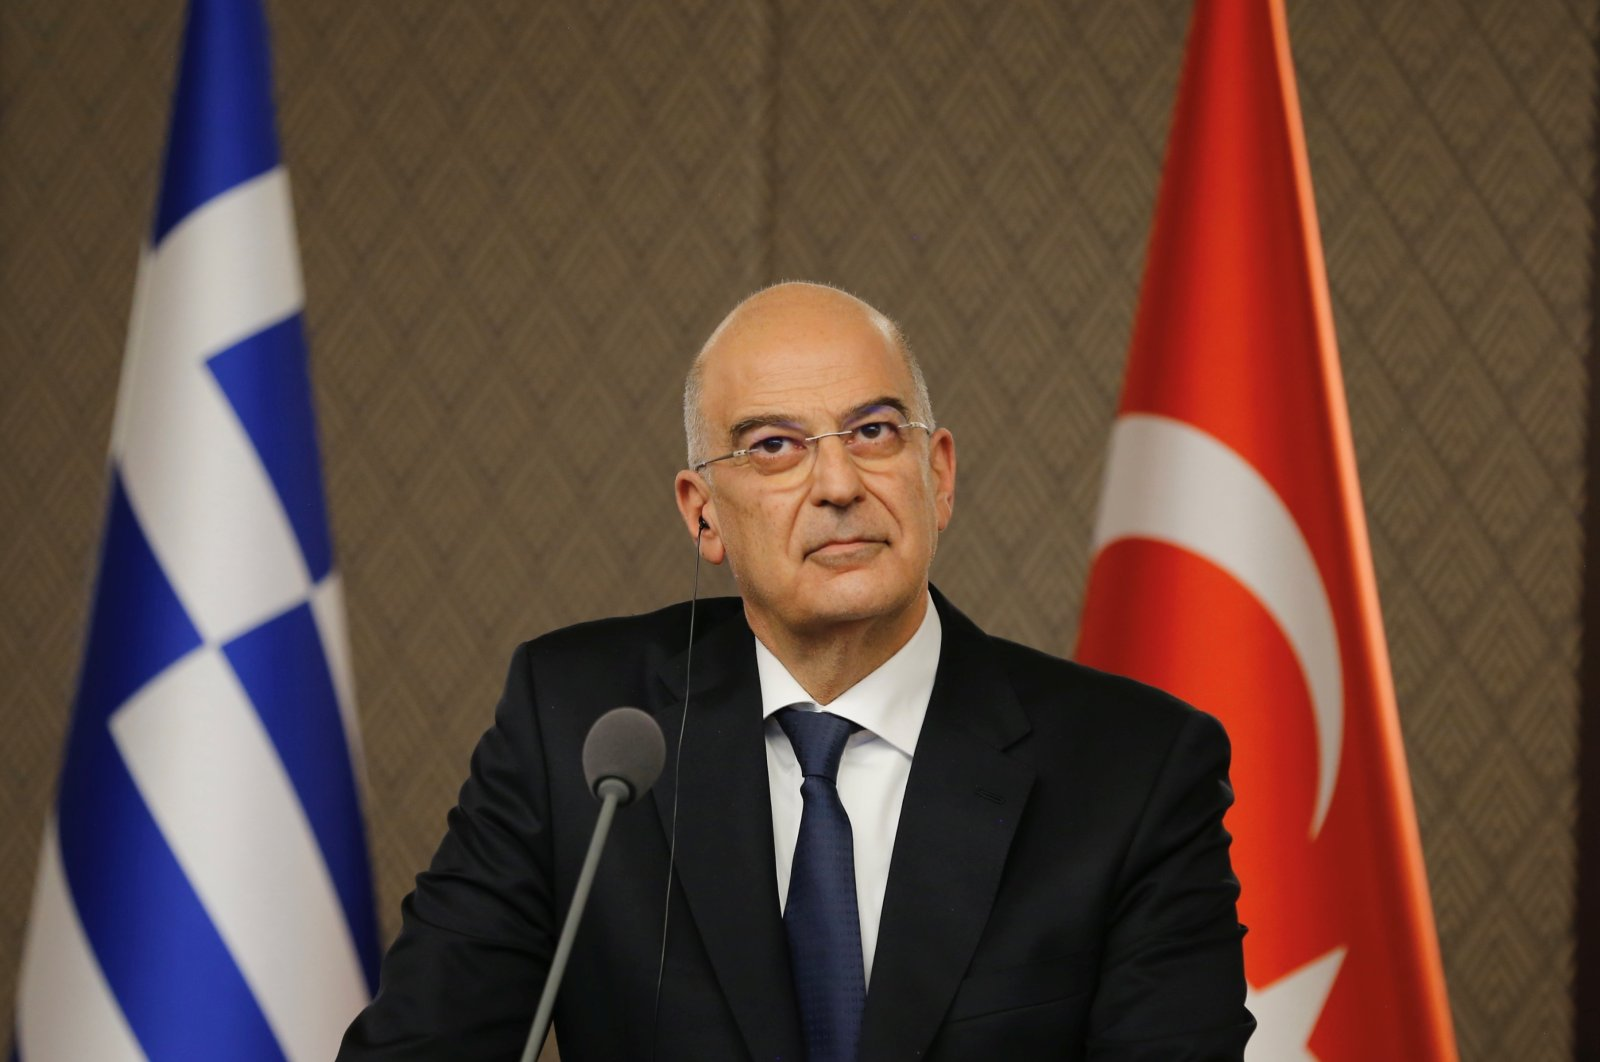 Greek Foreign Minister Nikos Dendias looks on during a news conference with his Turkish counterpart Mevlüt Çavuşoğlu (not pictured), Ankara, Turkey April 15, 2021. (Turkish Foreign Ministry Handout via REUTERS)